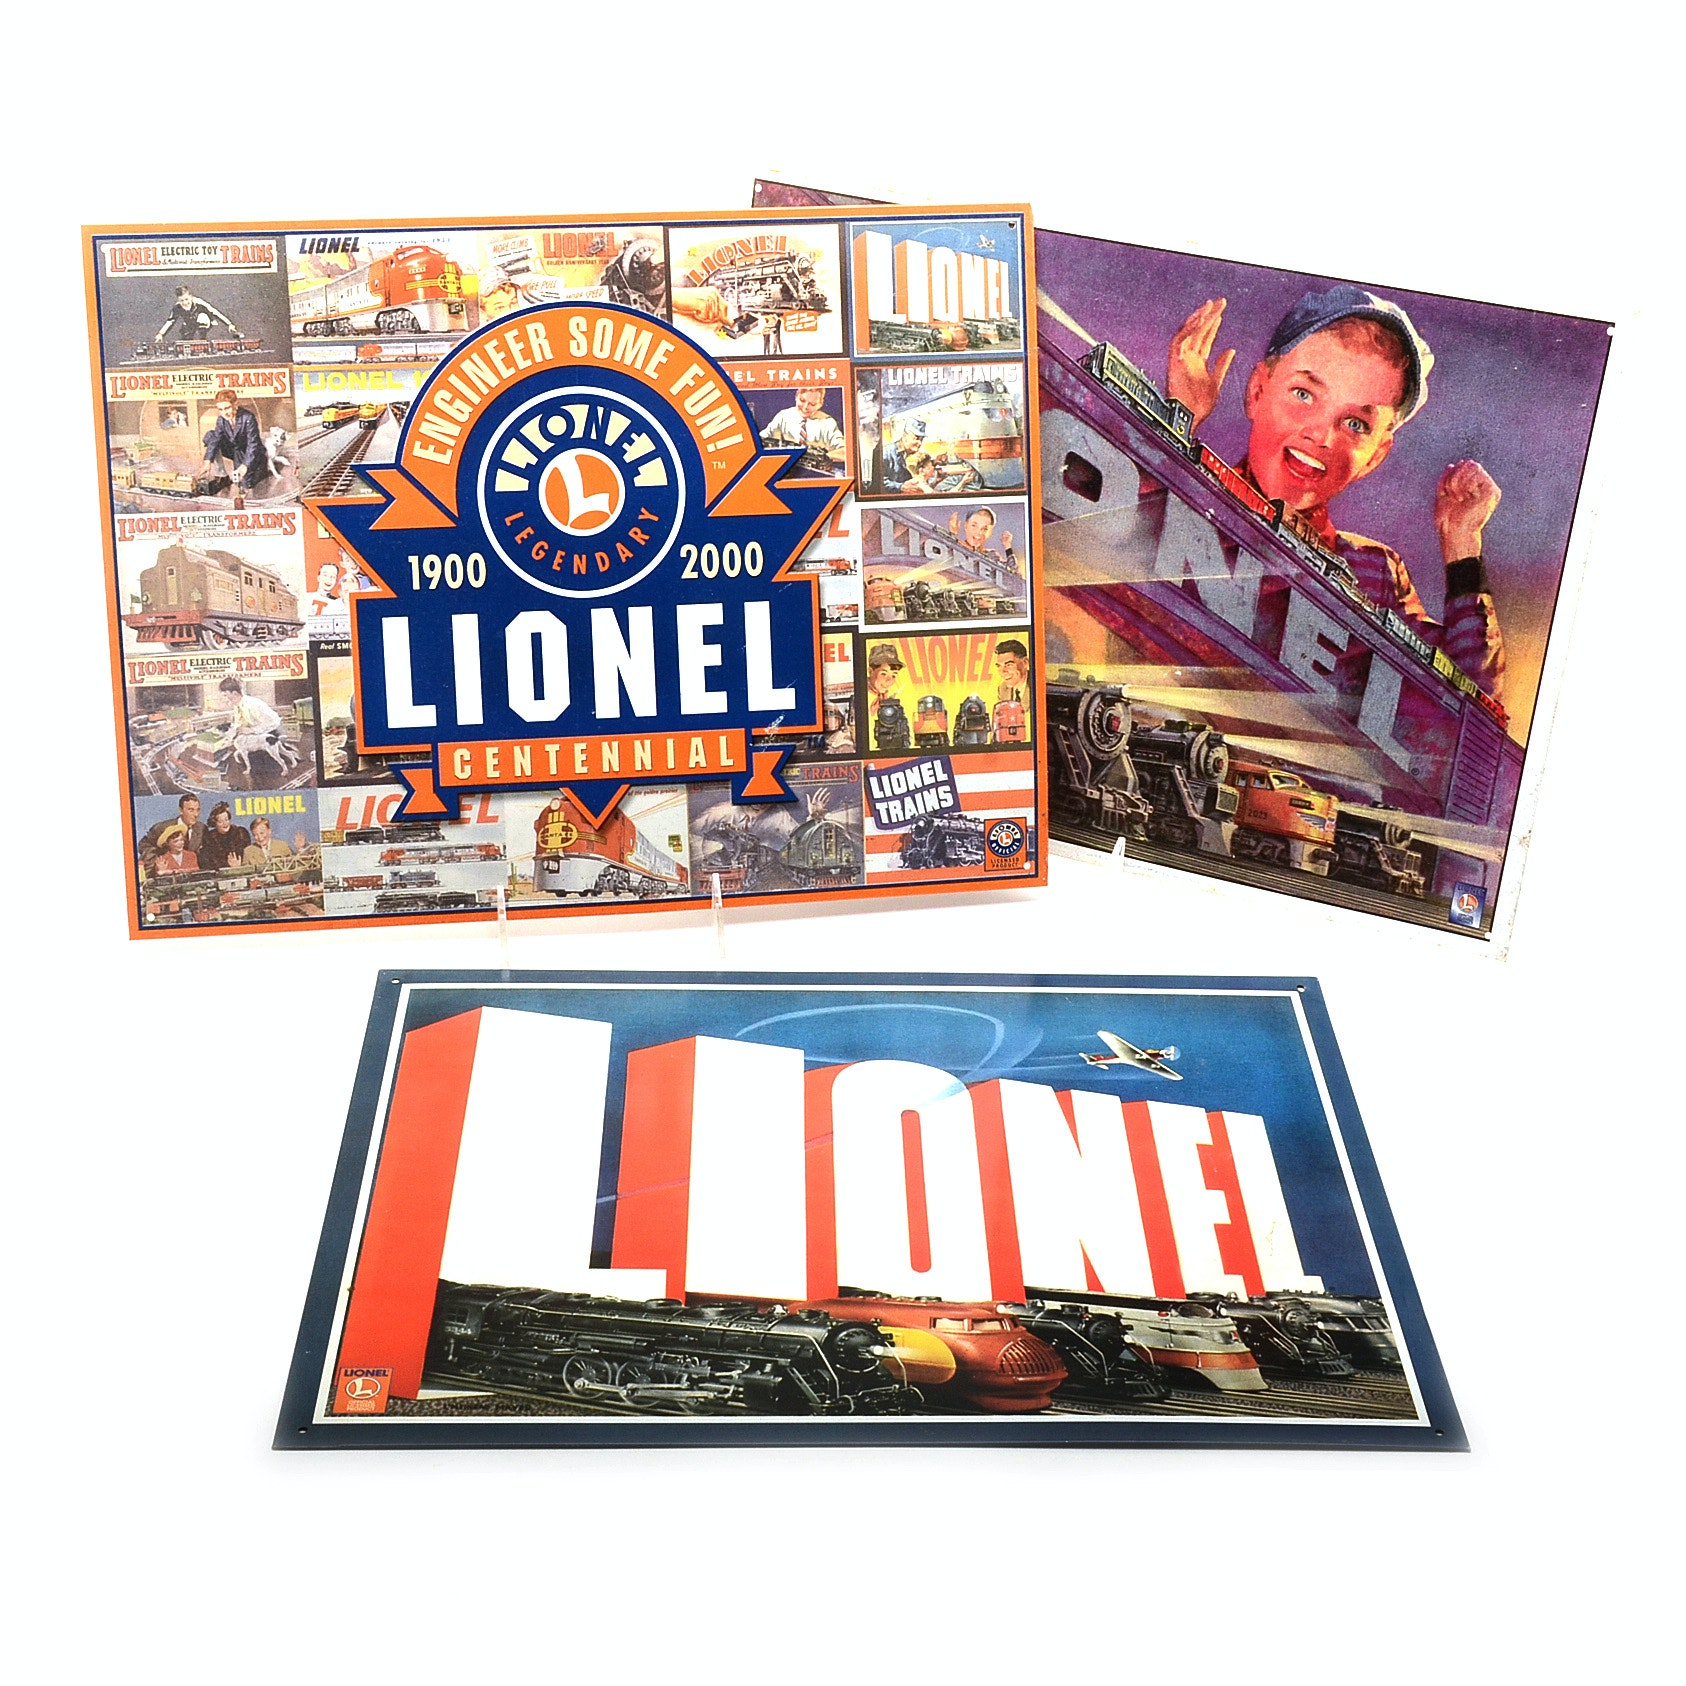 Lionel Reproduction Metal Advertising Signs